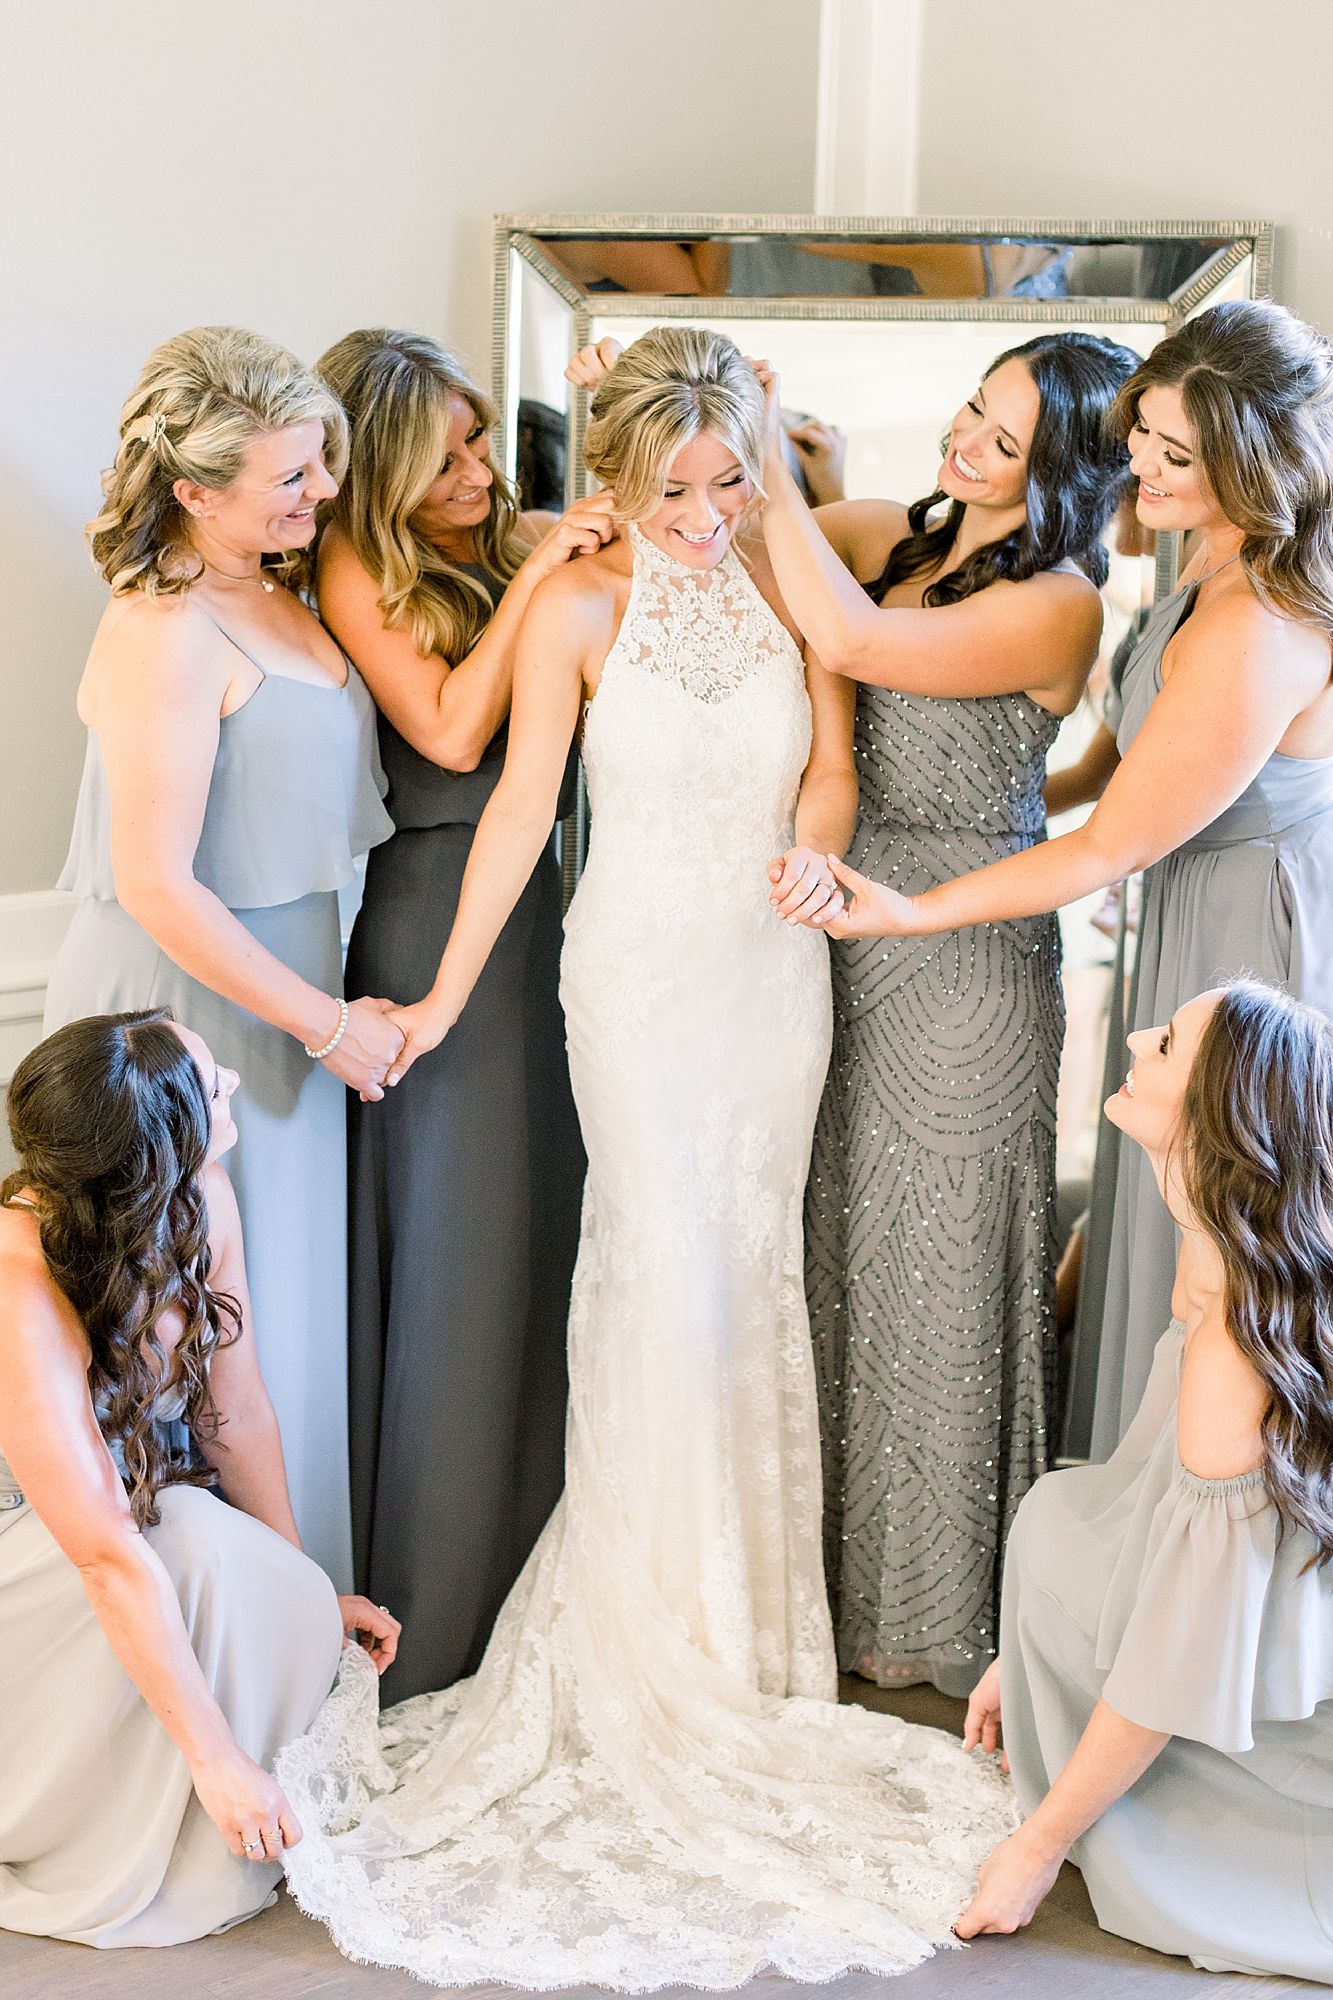 The Maples Wedding in Woodland California - Ashley Baumgartner - Sacramento Wedding Photographer - Sacramento Film Photographer_0015.jpg